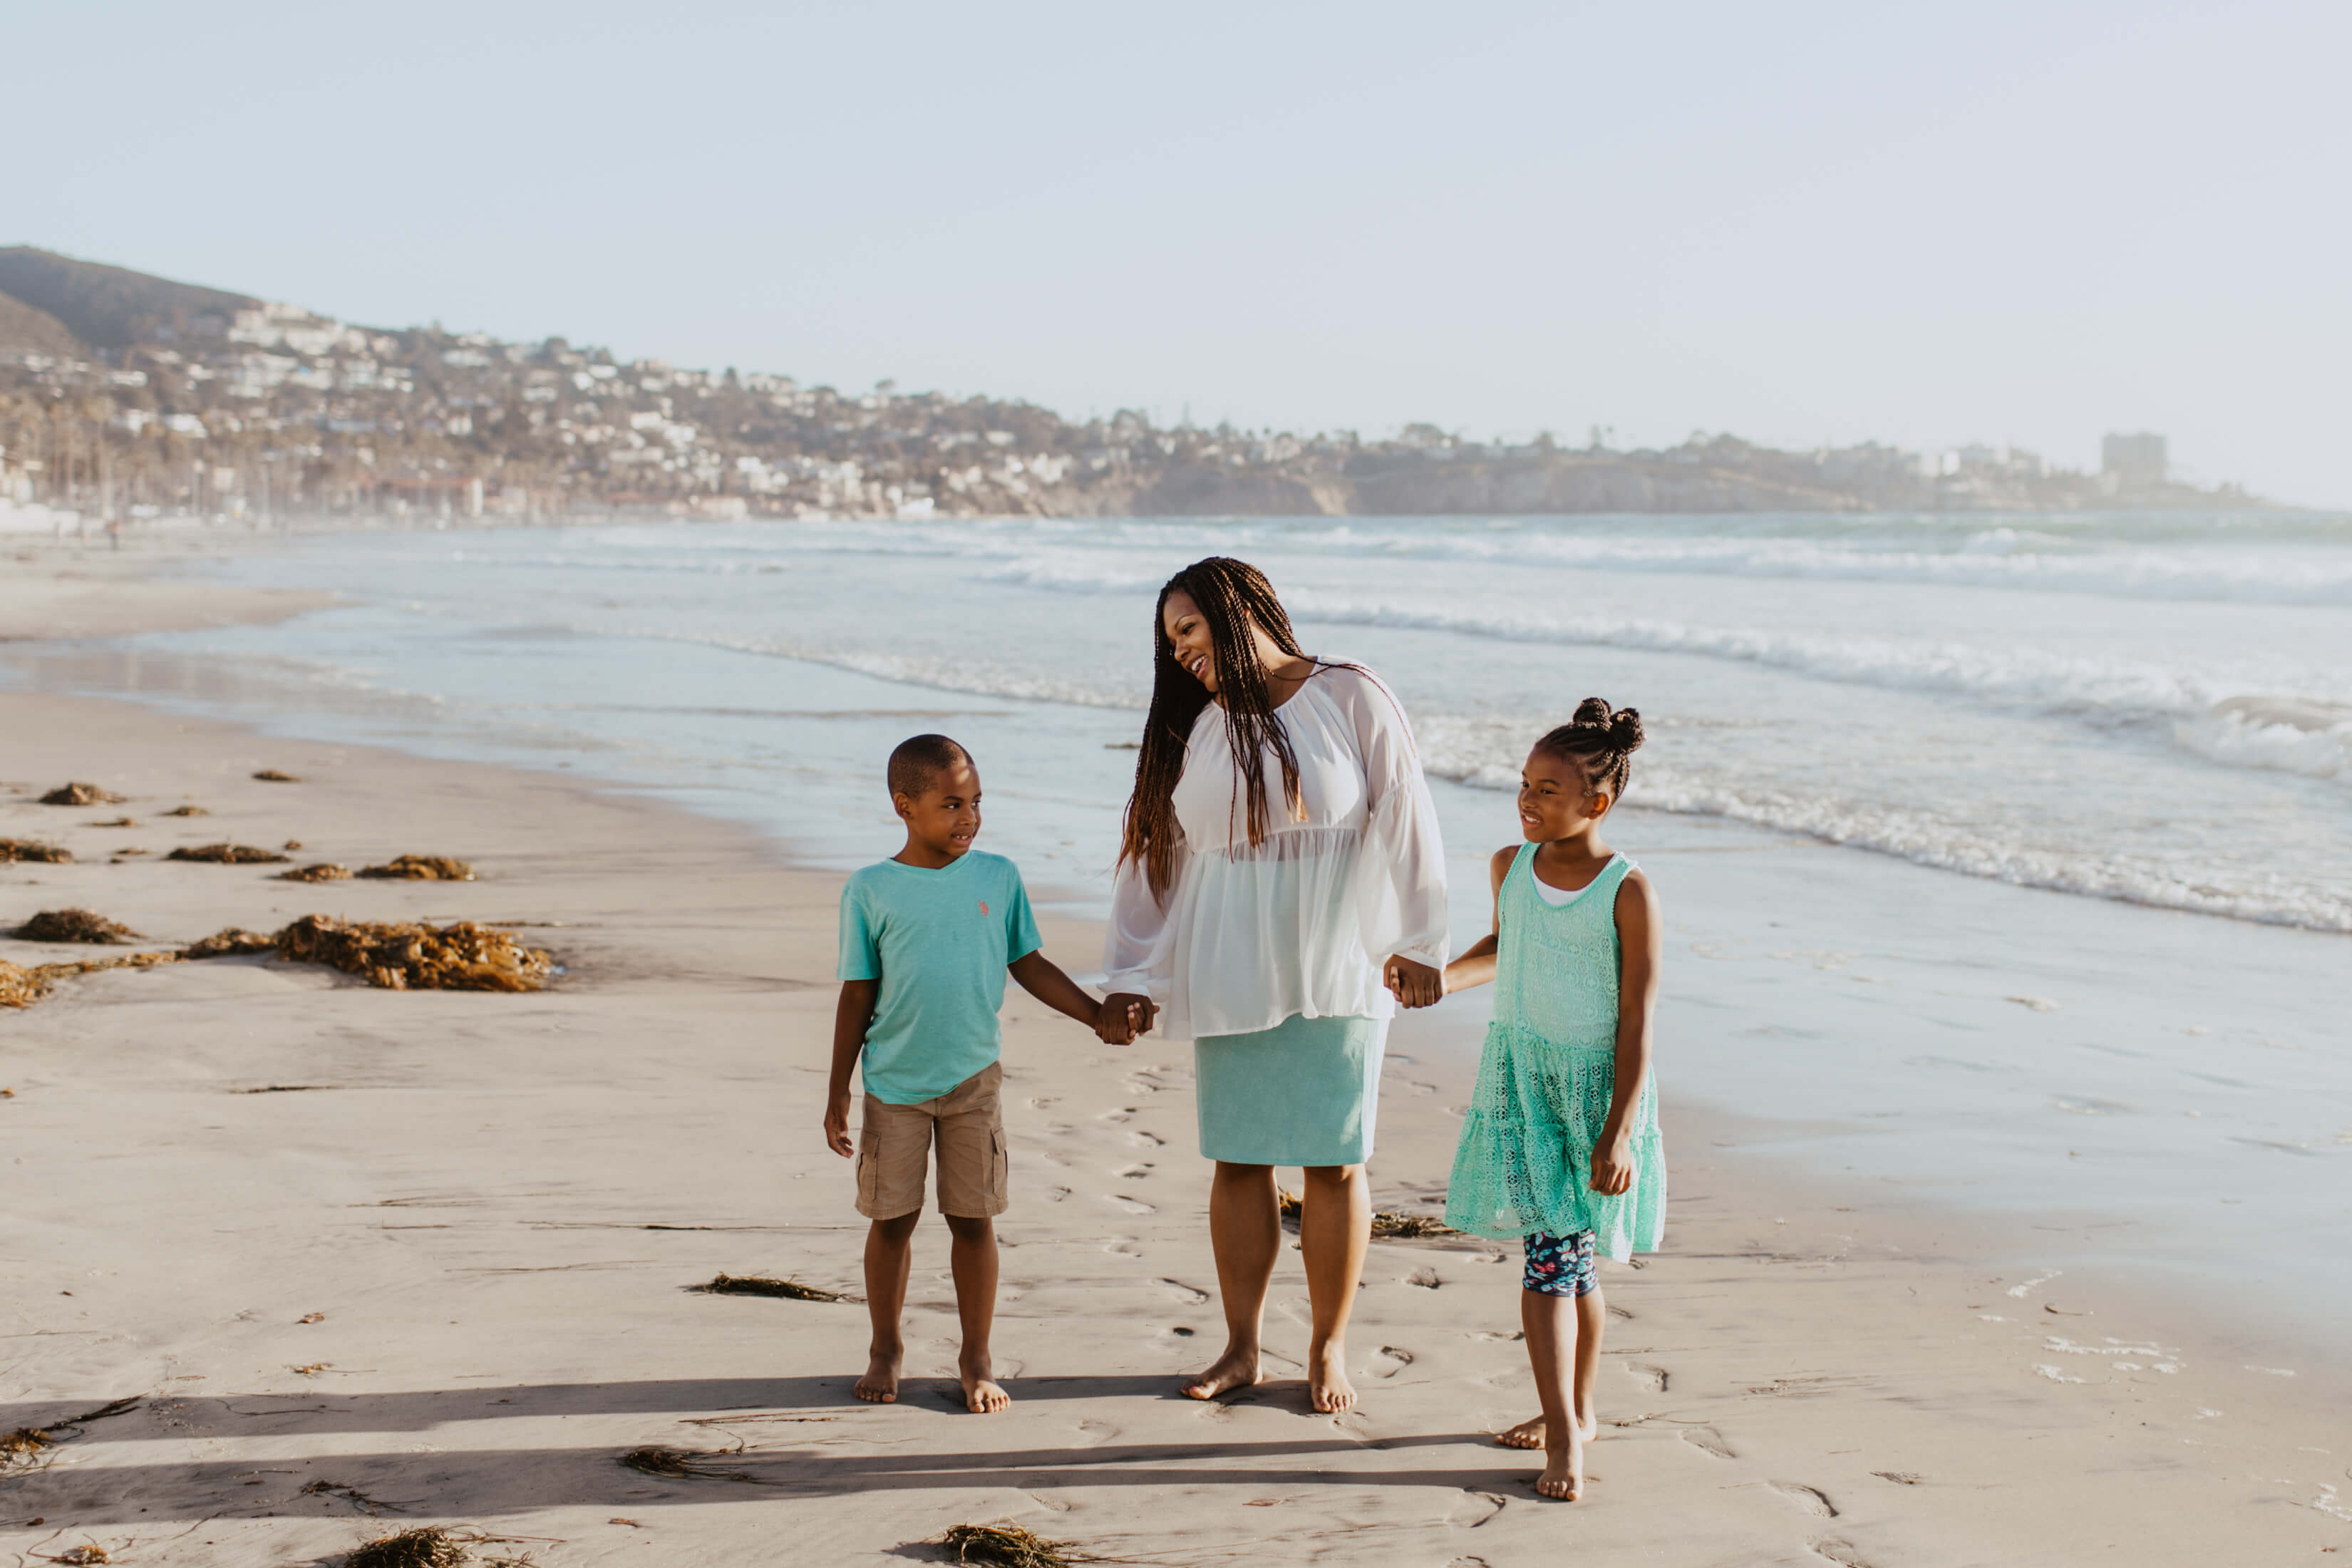 mother with son and daughter holding hands on the beach in San Diego, California